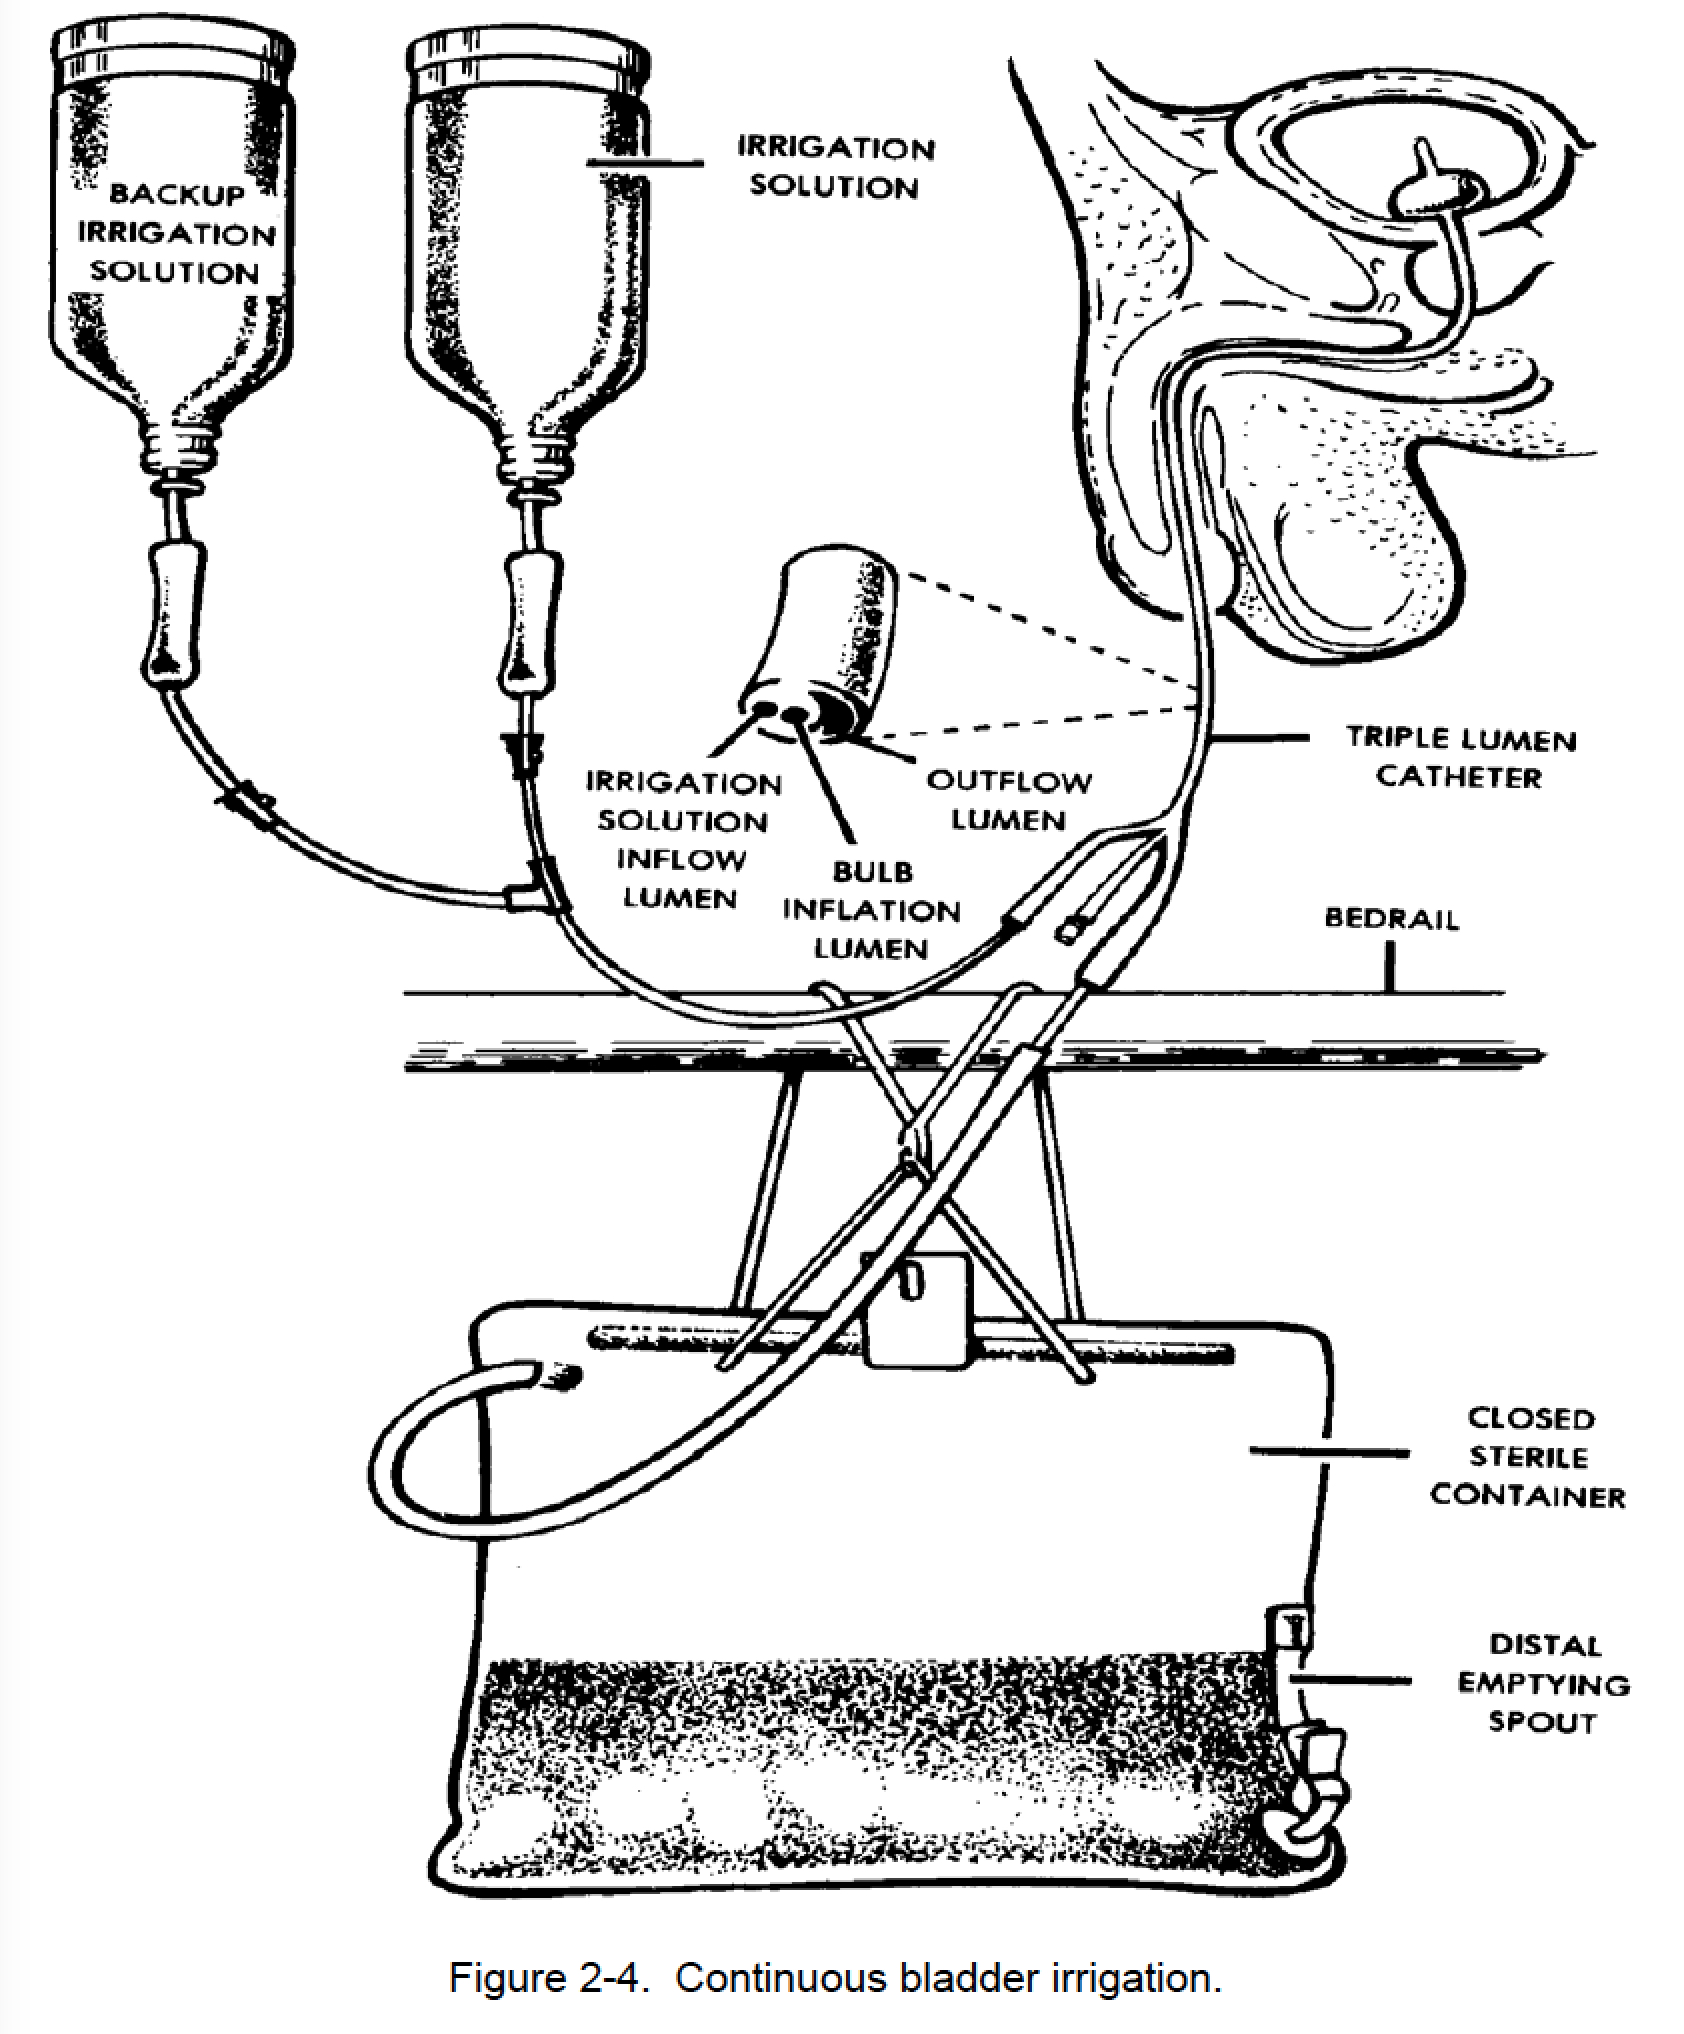 2 23 Continuous Bladder Irrigation